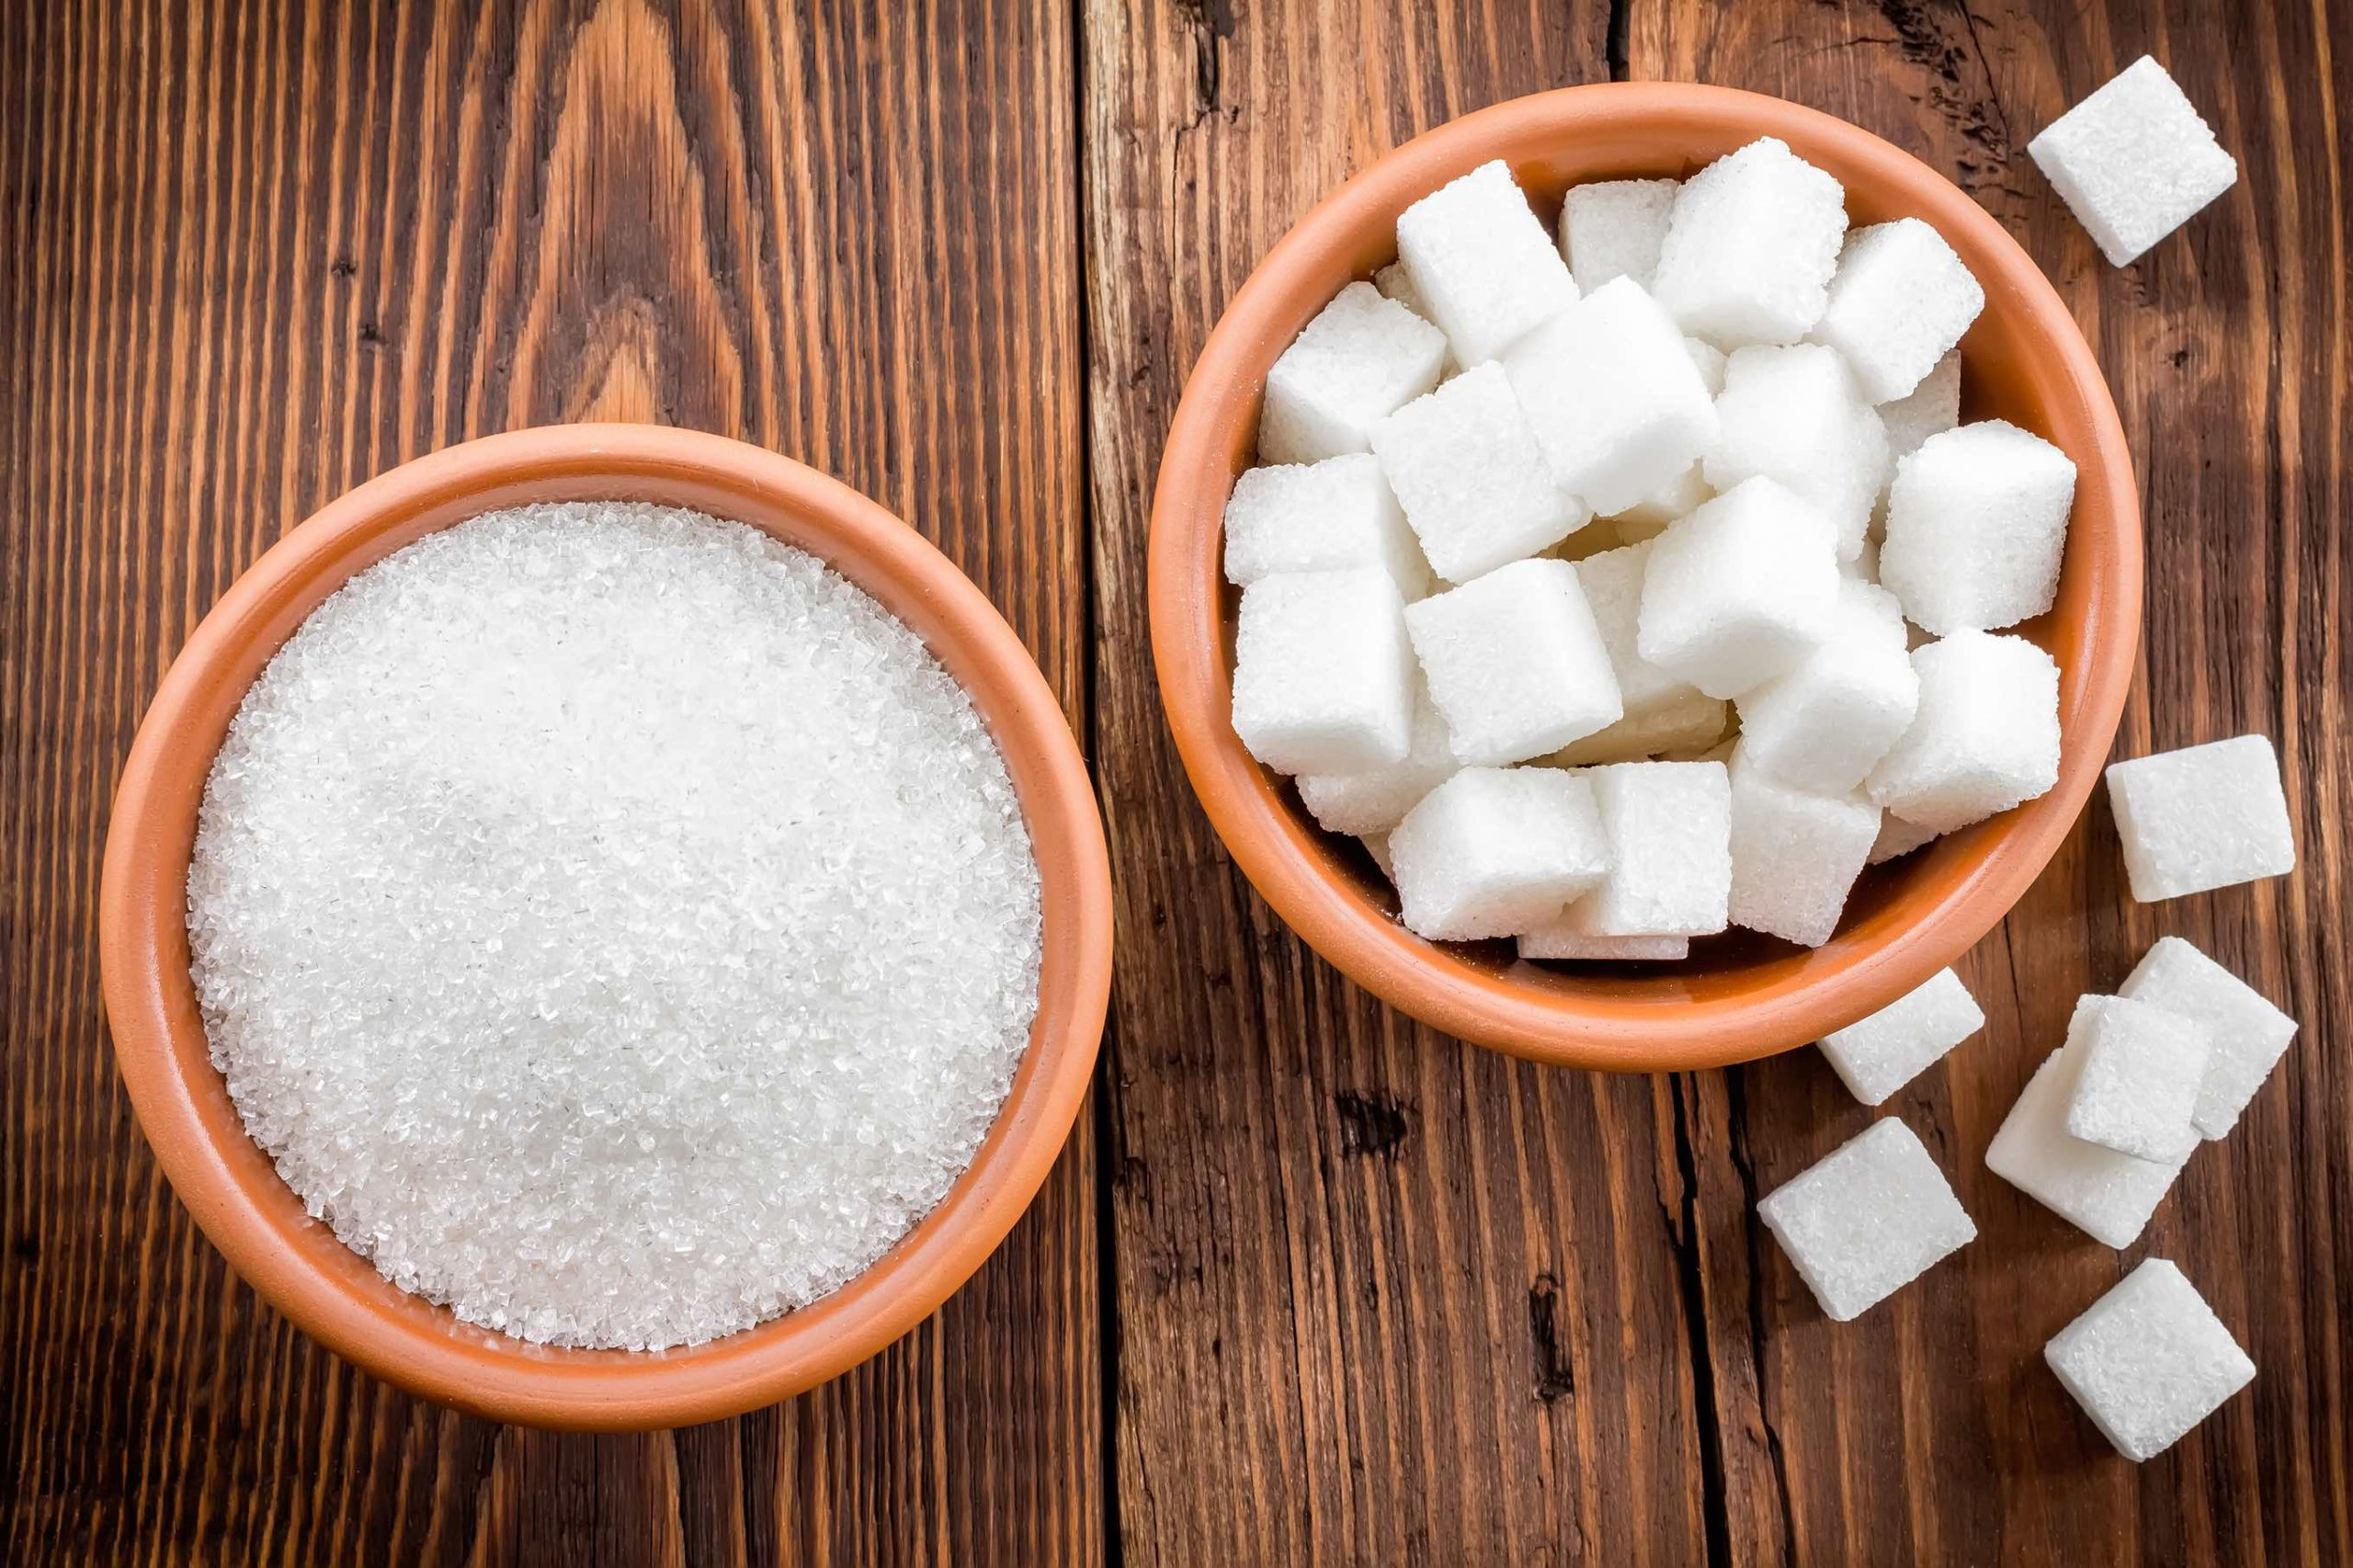 Everything but sugar – Sweet alternatives for athletes